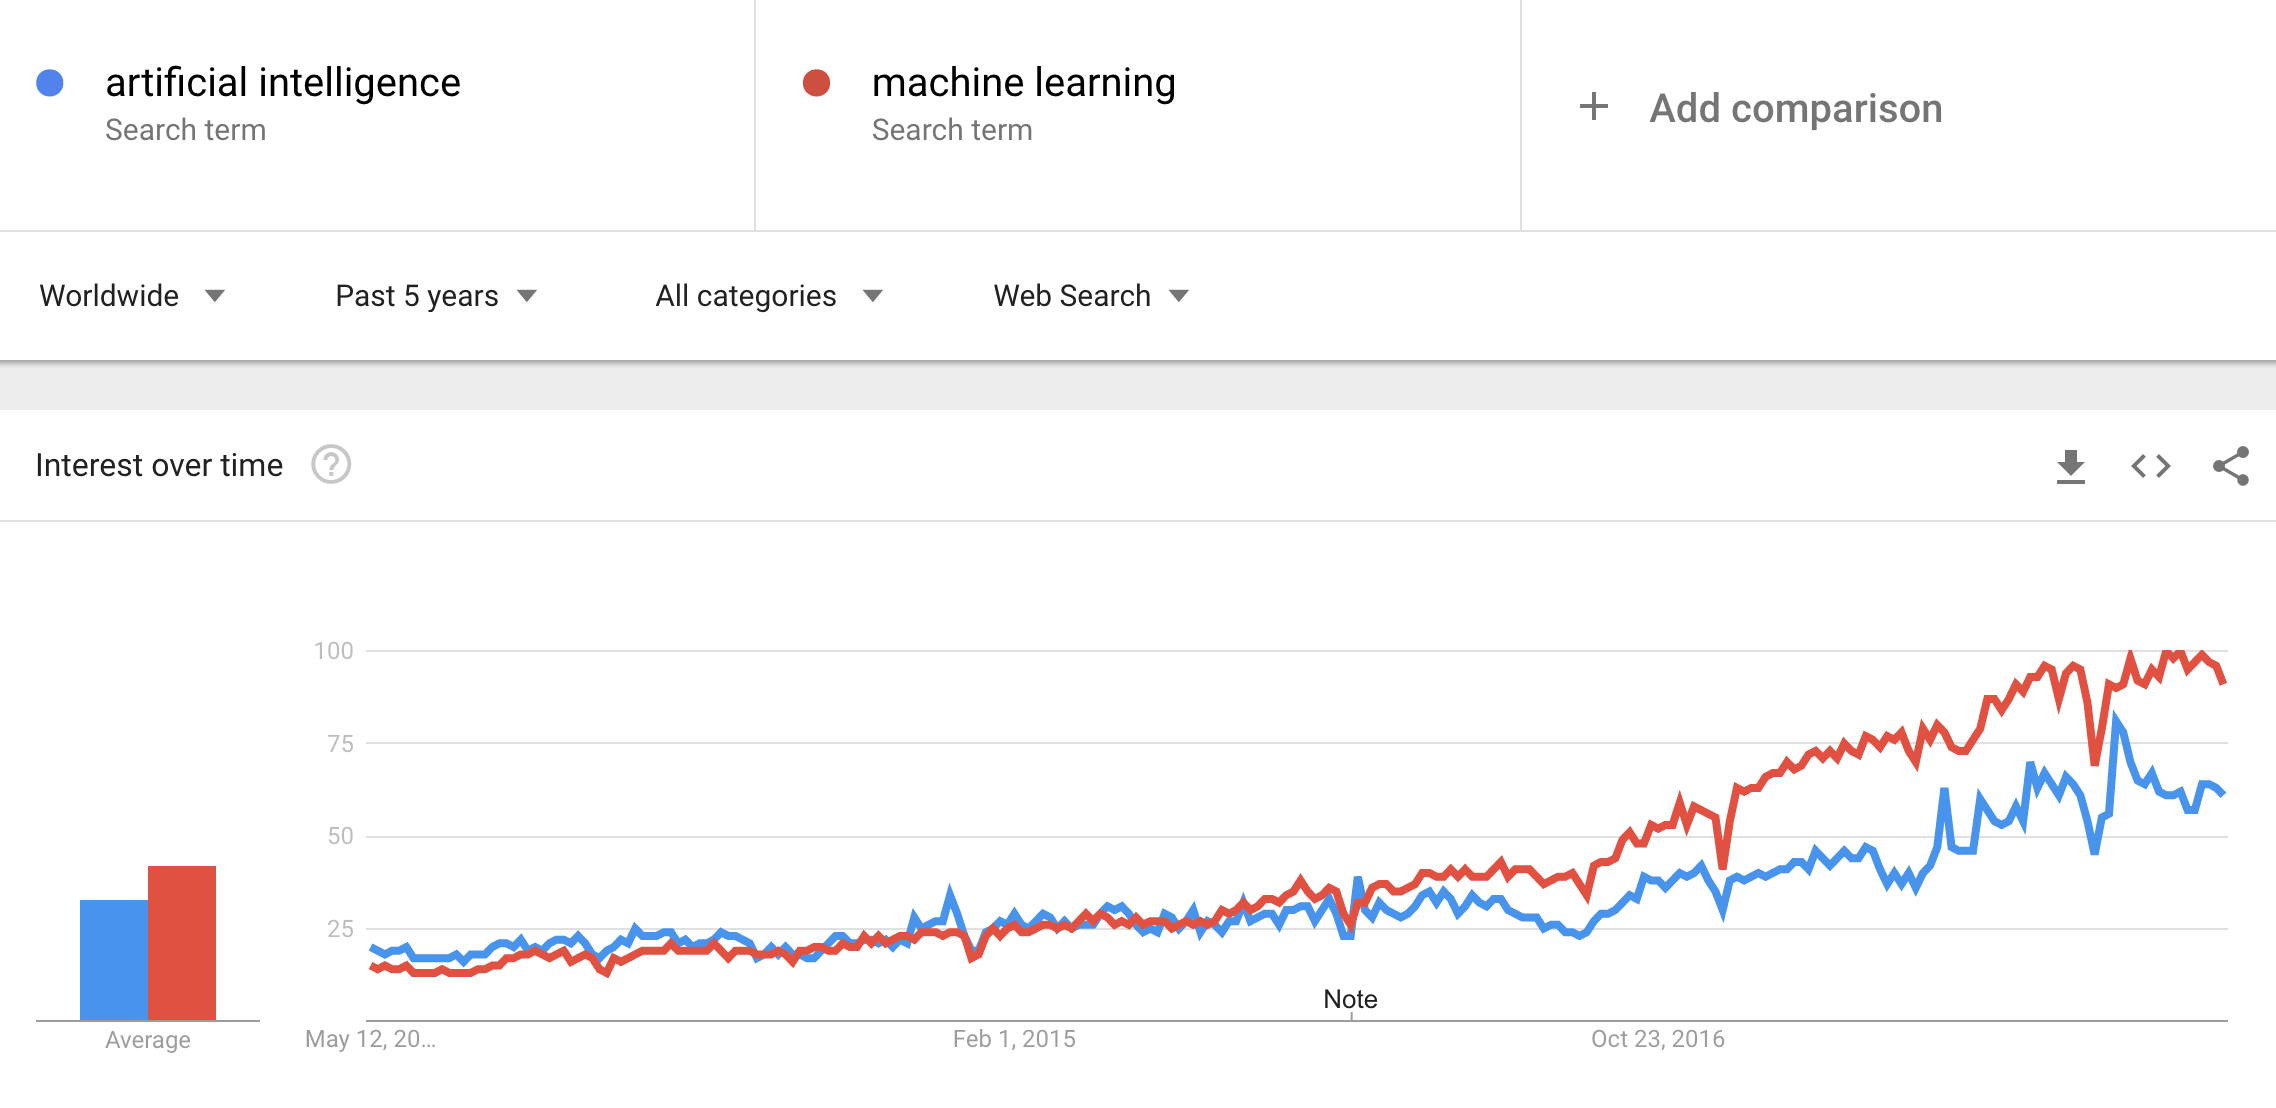 google-trends-artificial-intelligence-machine-learning